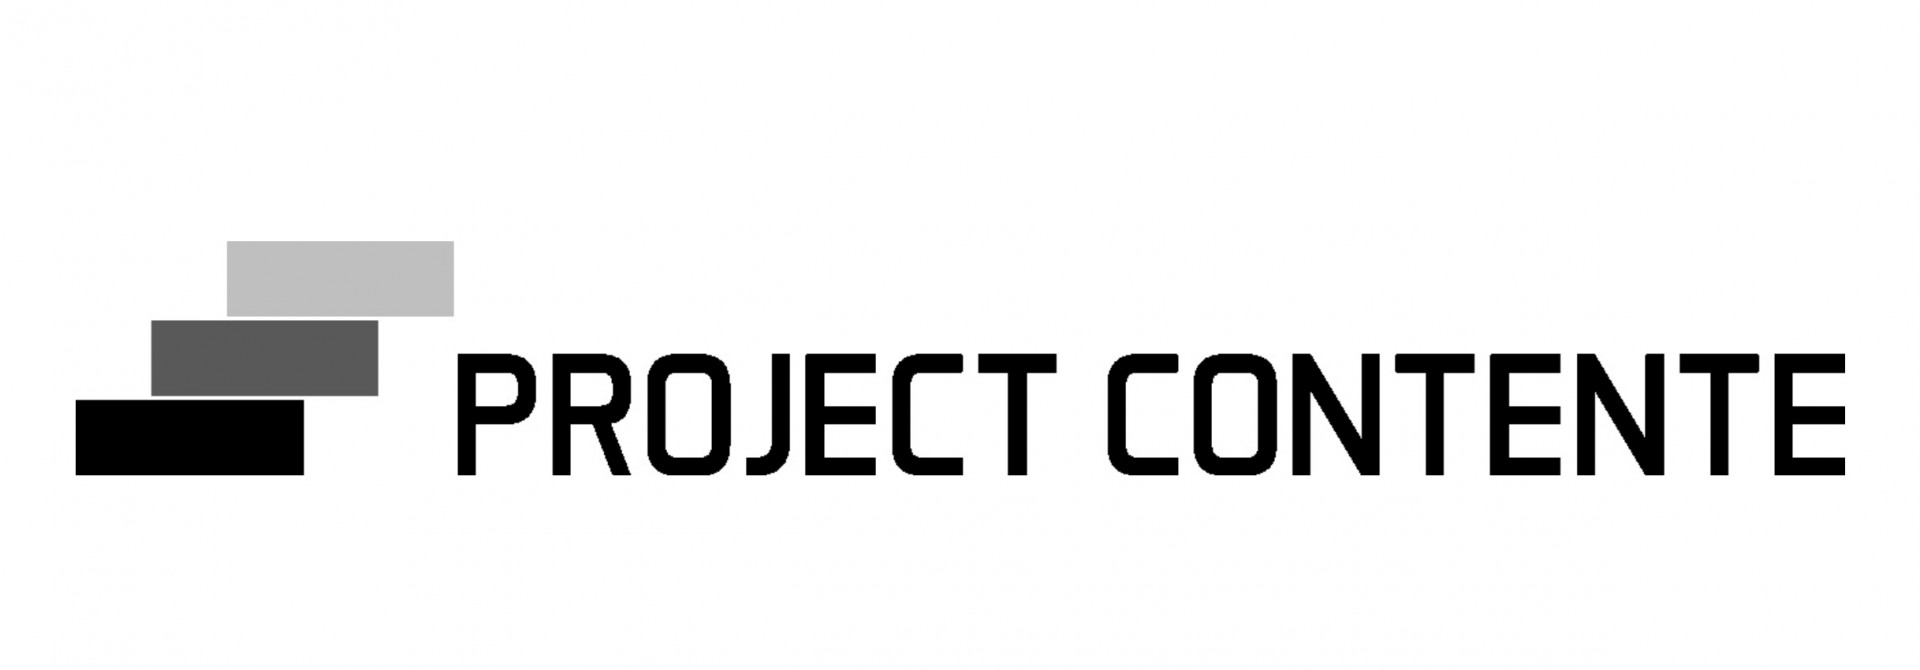 projectcontente